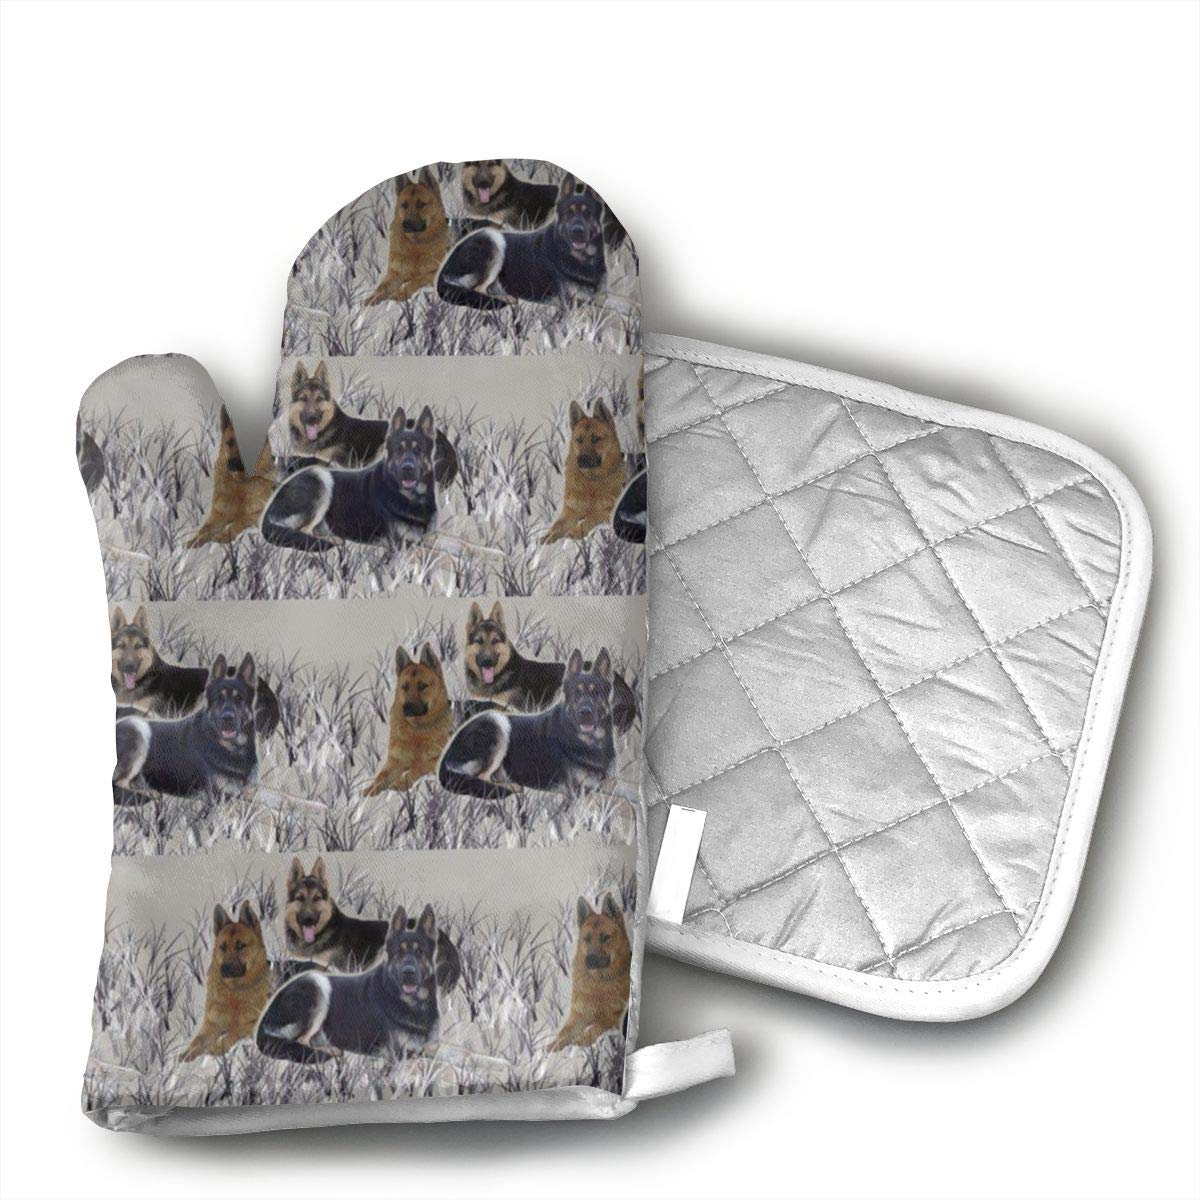 German Shepherds Oven Mitts Heat Resistant Kitchen Gloves and Potholders BBQ Gloves-Cotton Pot Holders Non Slip Oven Gloves for Kitchen